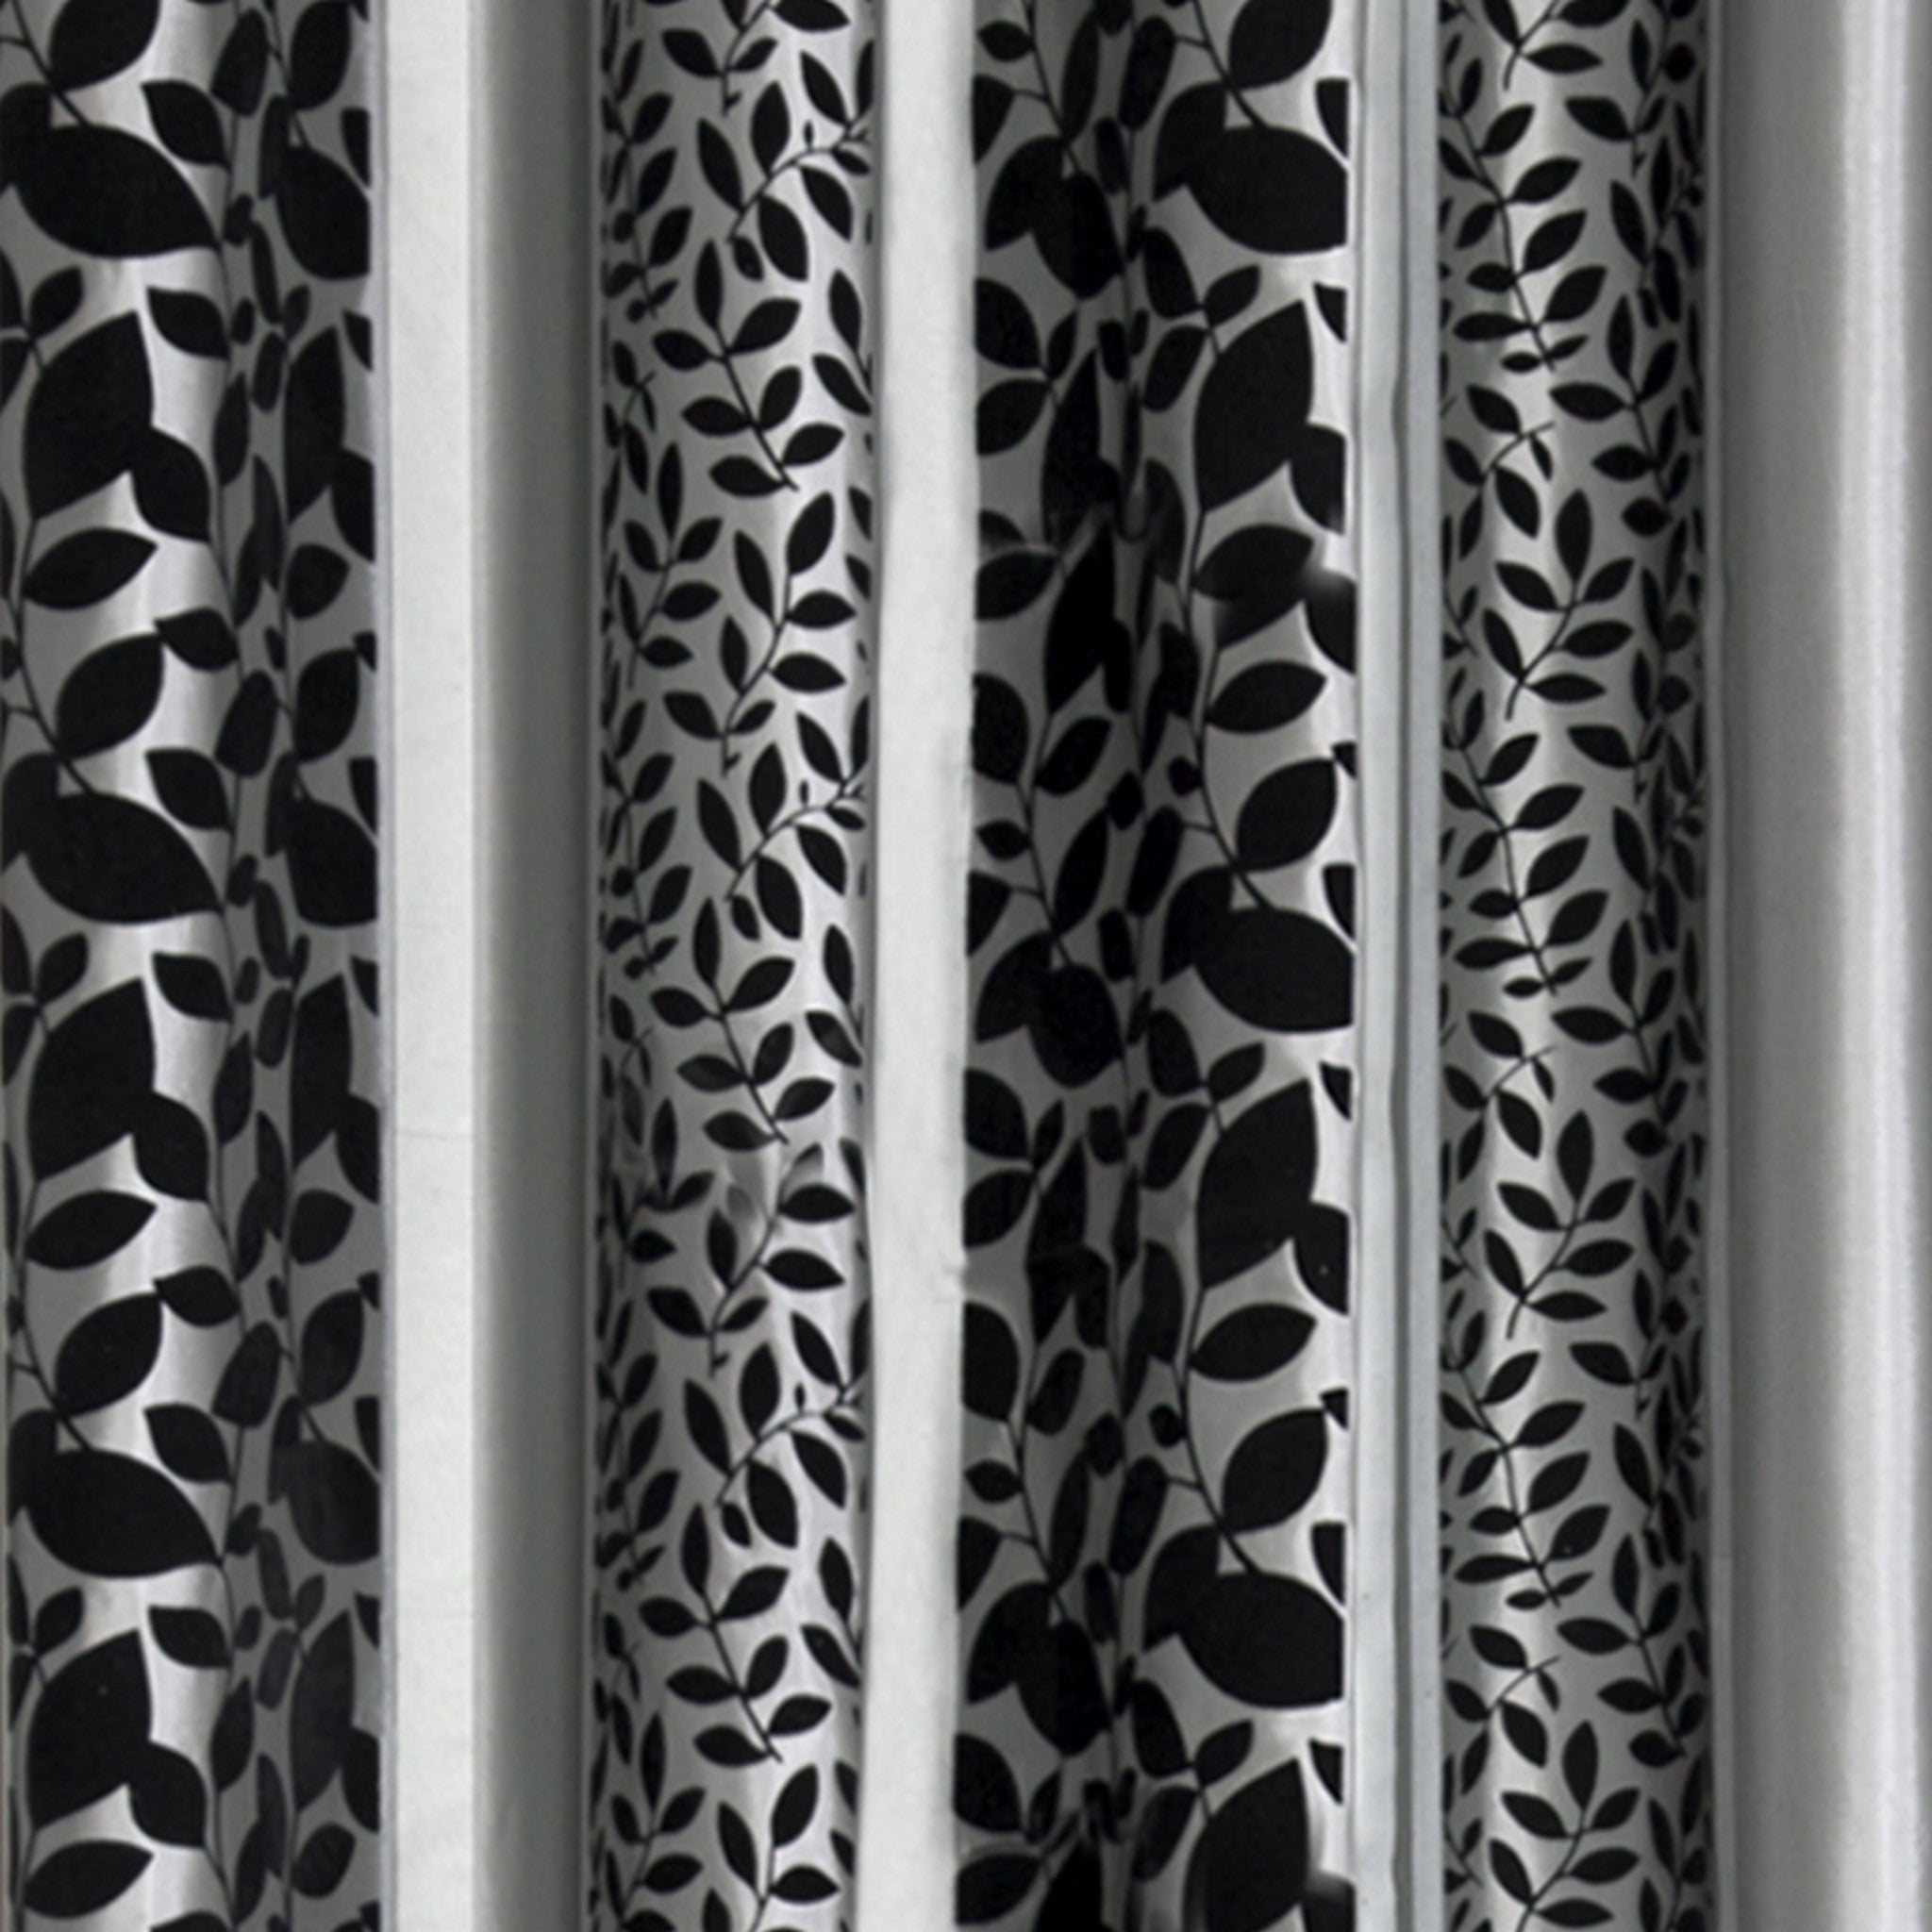 Grey Black Curtains With Leaves Pattern